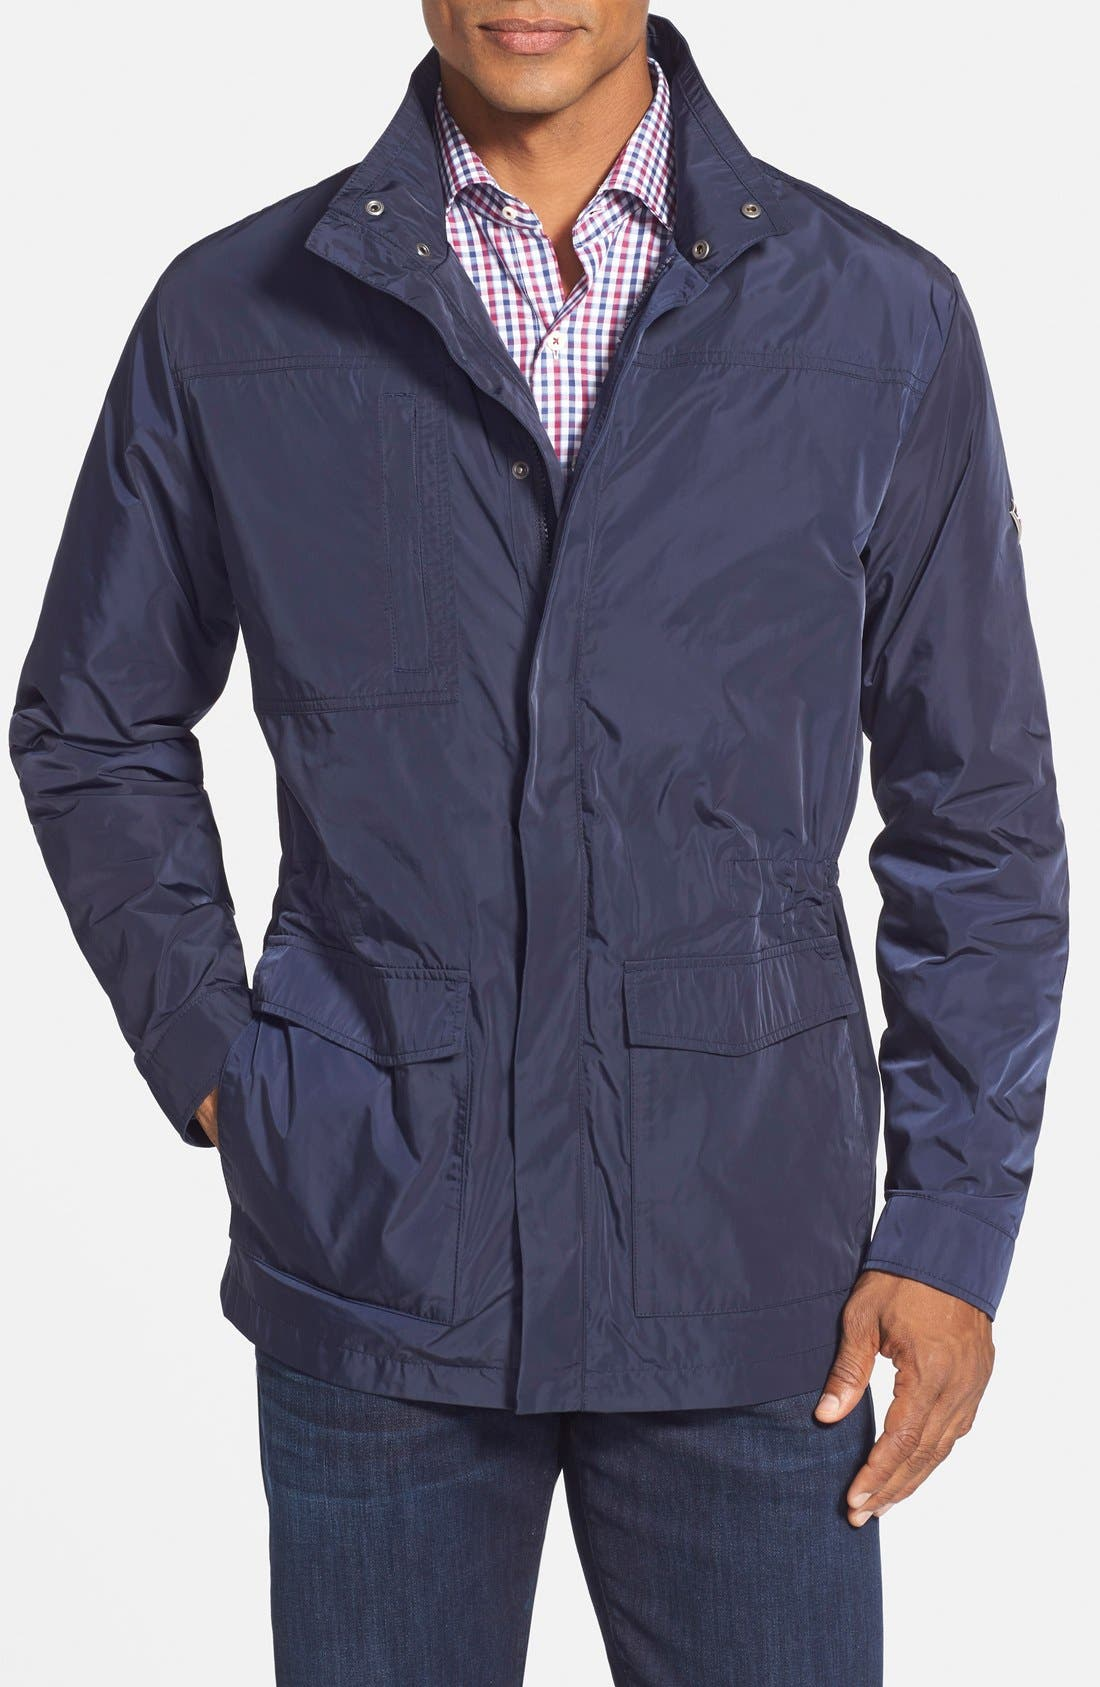 Birch Bay Water Resistant Jacket,                             Main thumbnail 1, color,                             493